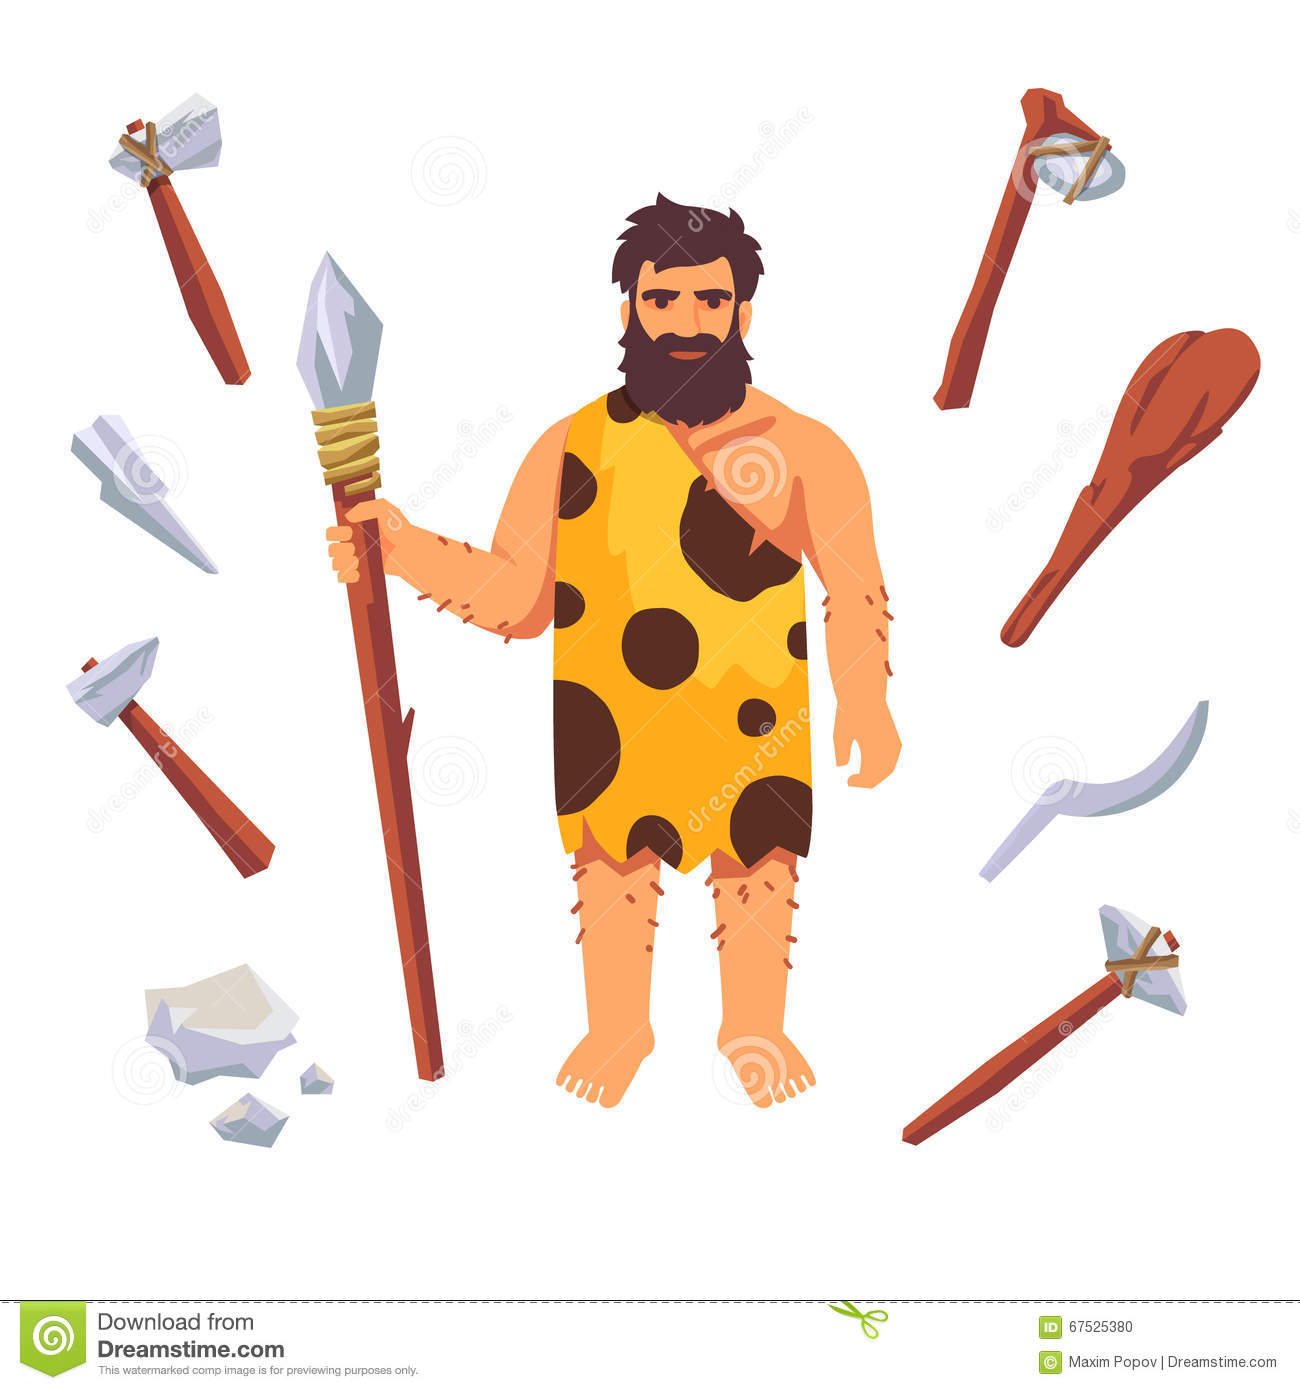 Stone age primitive man with wooden tools, axe, hammer, club, axe ...